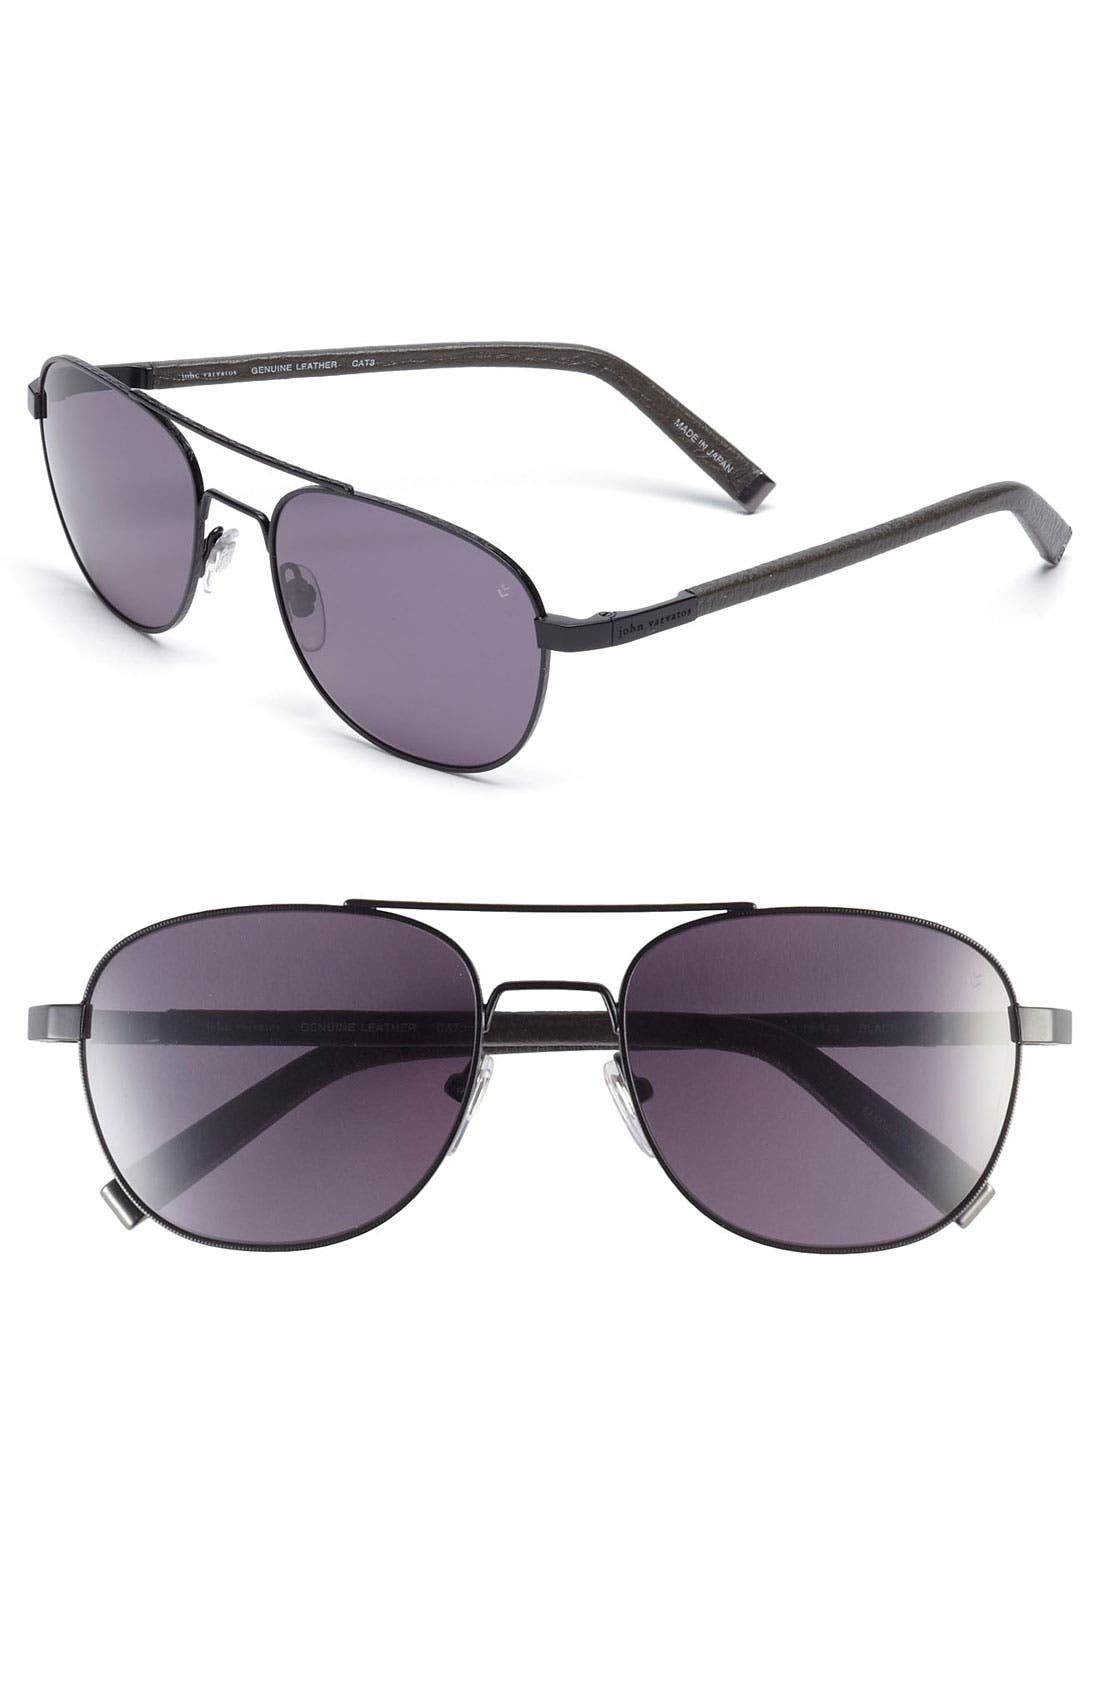 Main Image - John Varvatos Collection 55mm Sunglasses